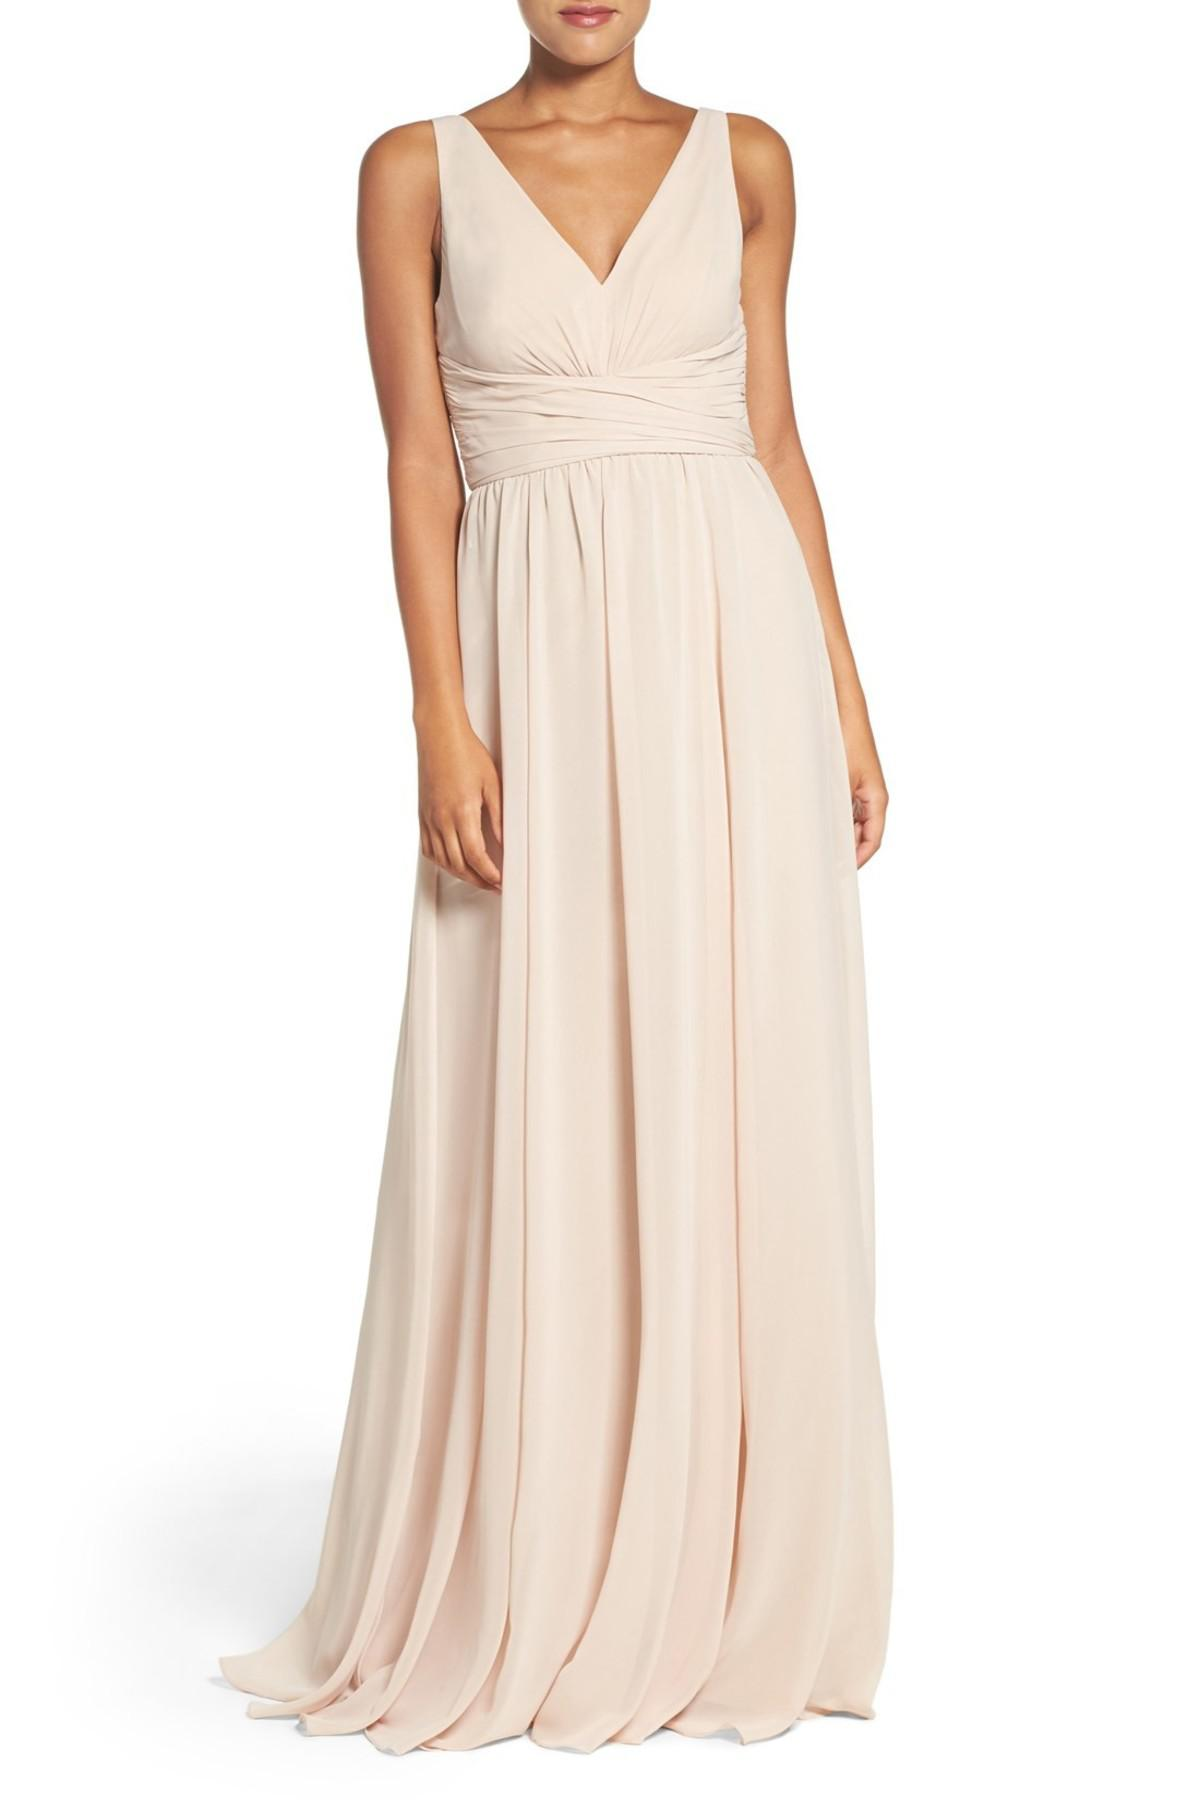 Lyst - Amsale Justine Double V-neck Chiffon Gown in Natural